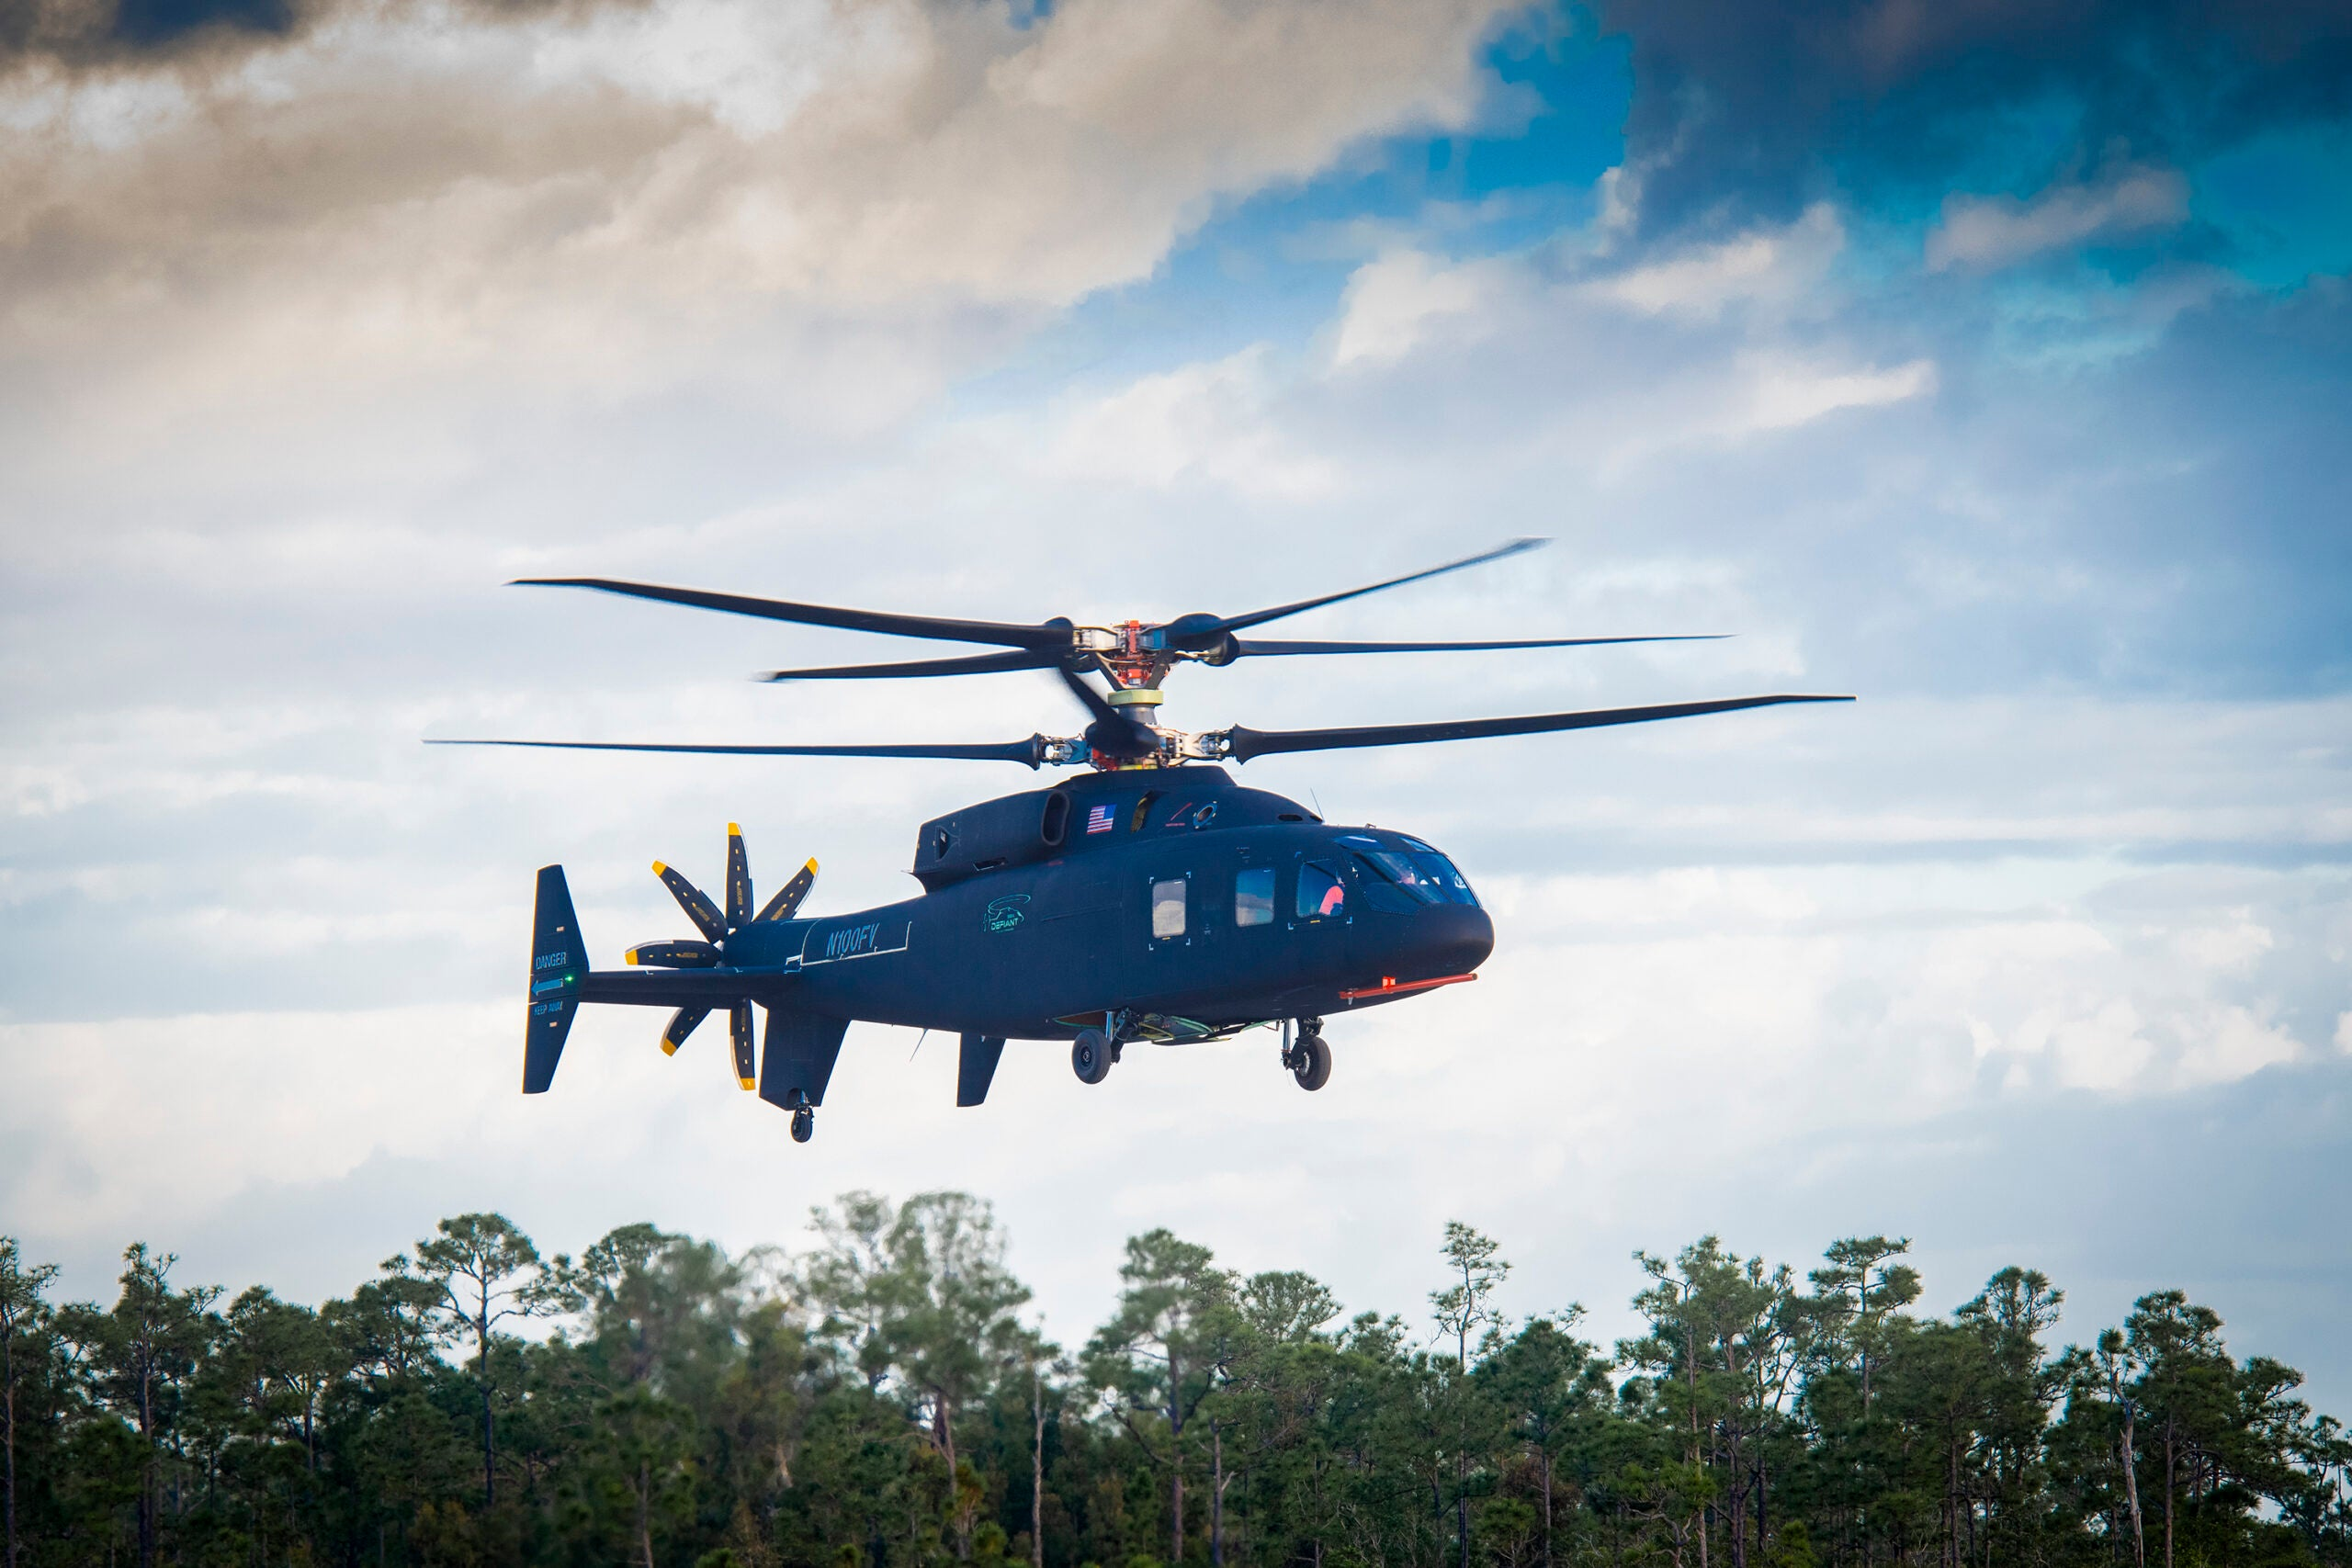 Dual rotors could make the Defiant one of the world's fastest helicopters